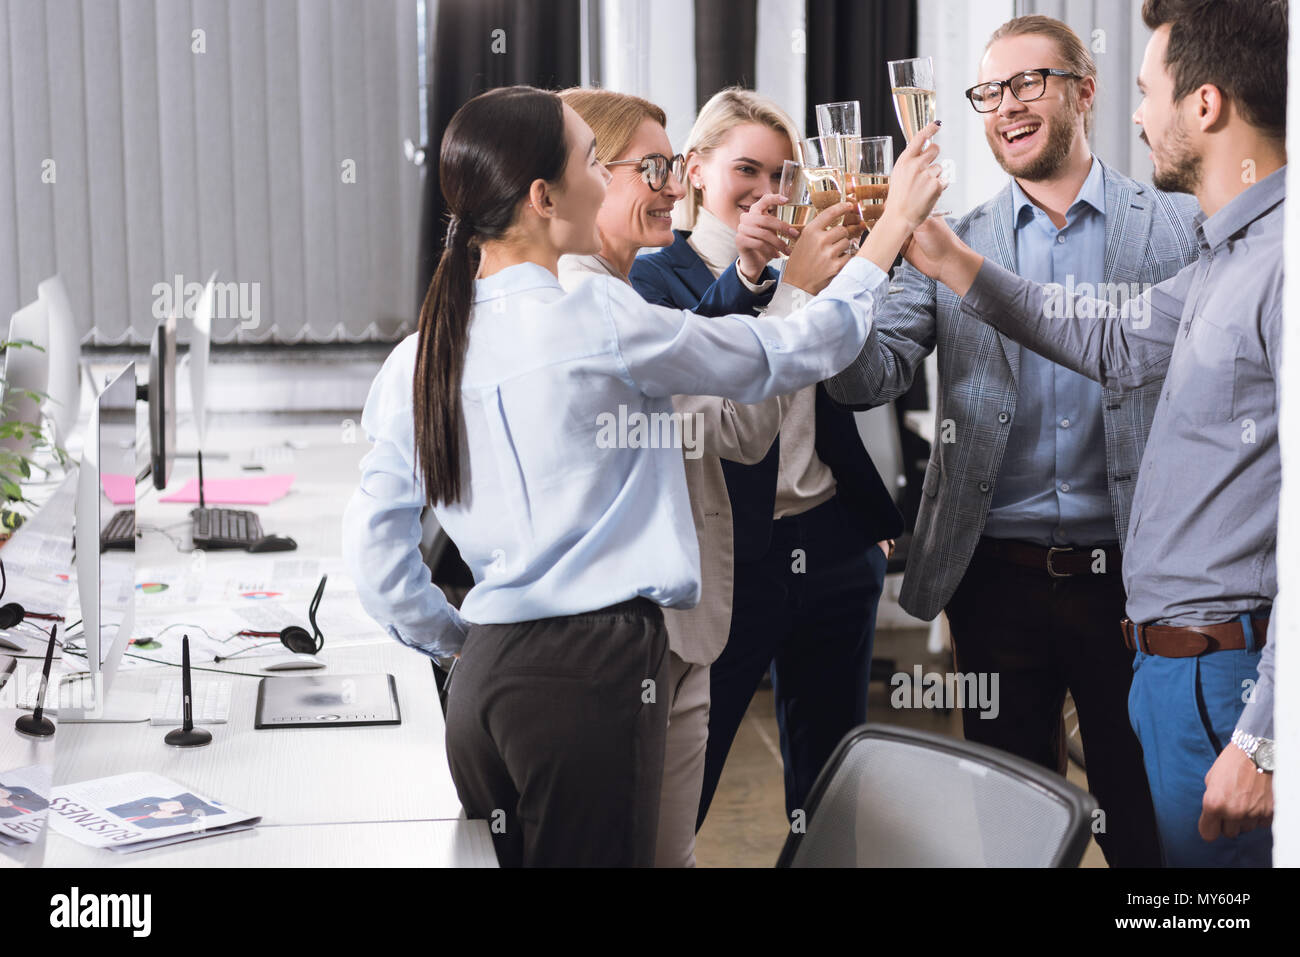 group of businesspeople clinking glasses of champagne in office - Stock Image